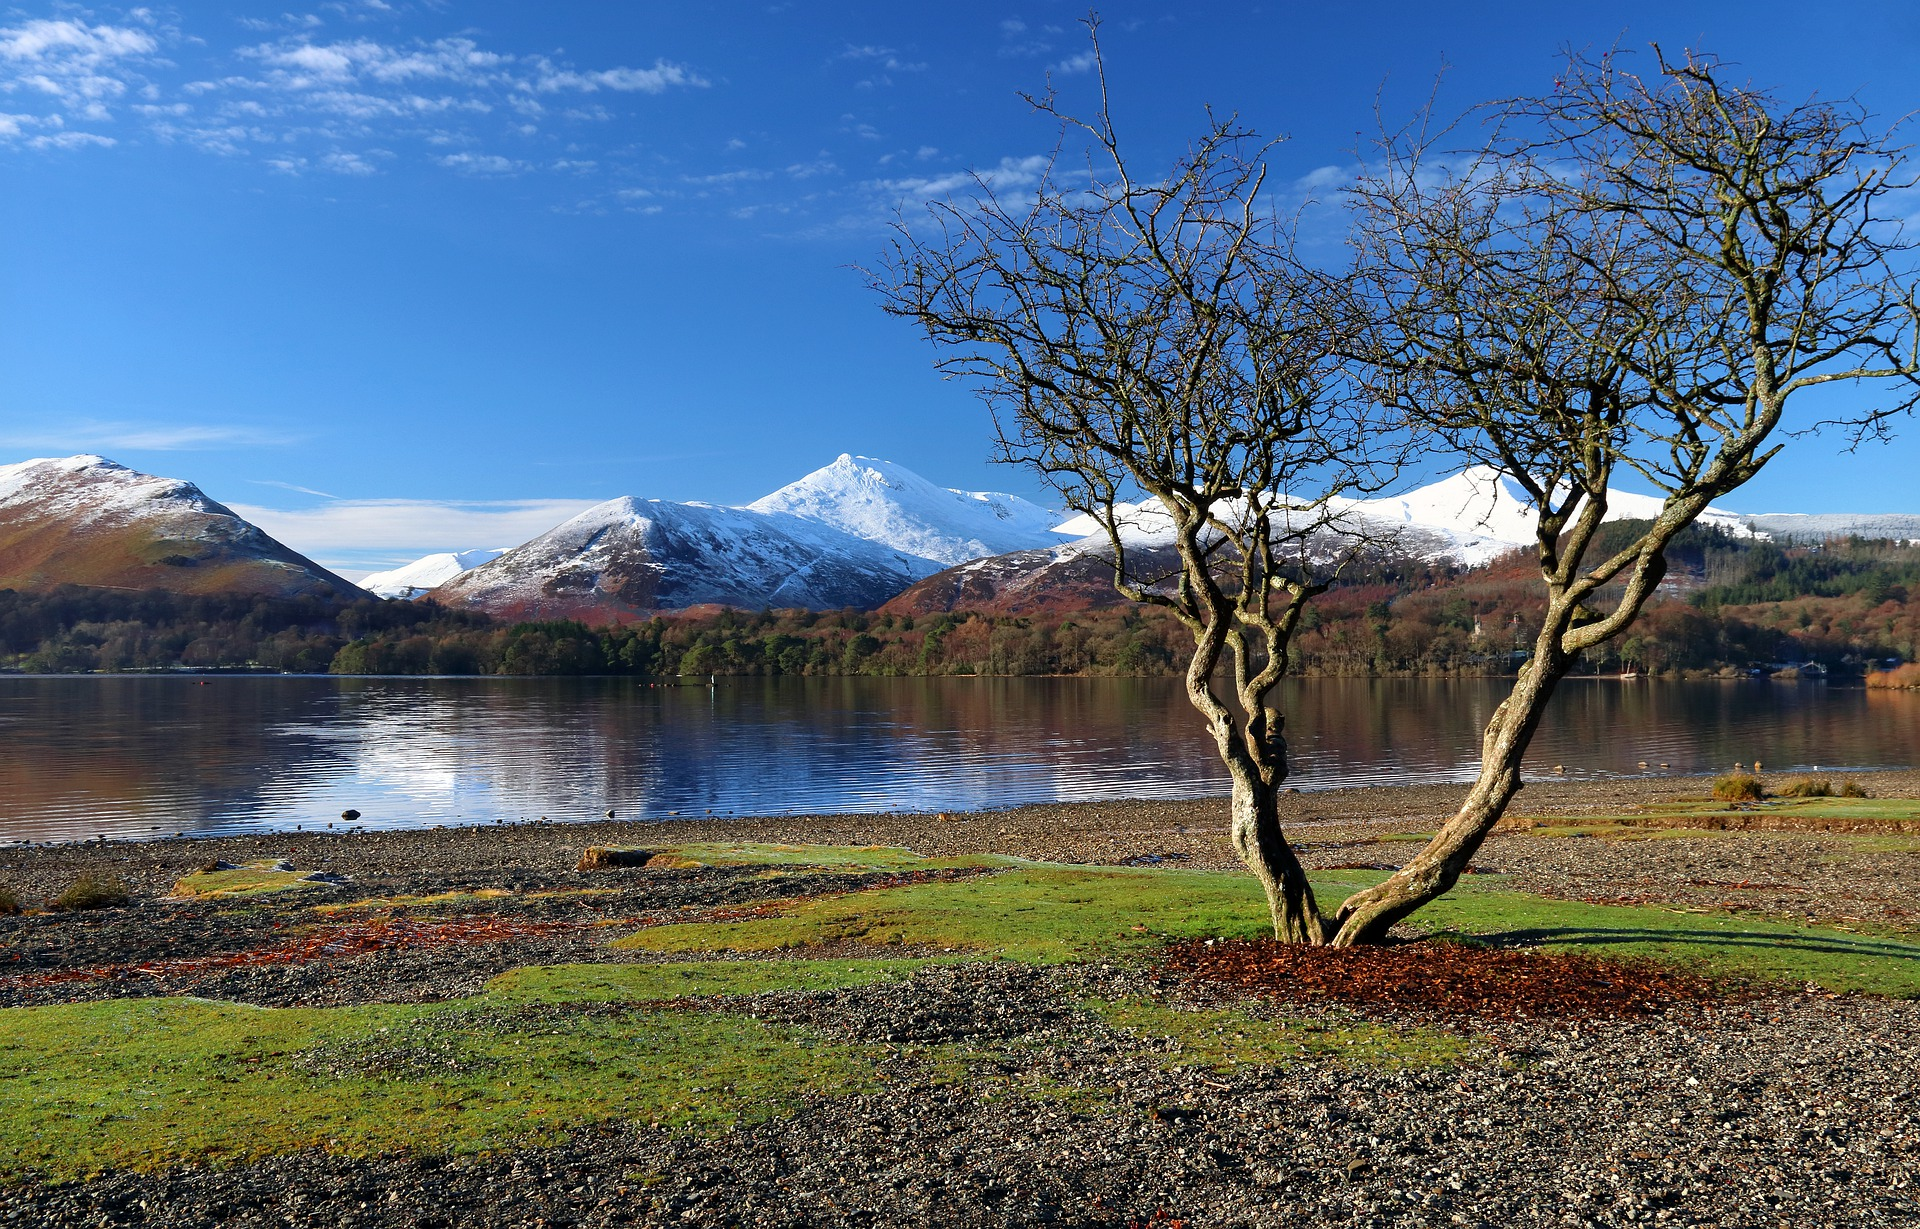 where to stay in the lake district, Keswick hotels